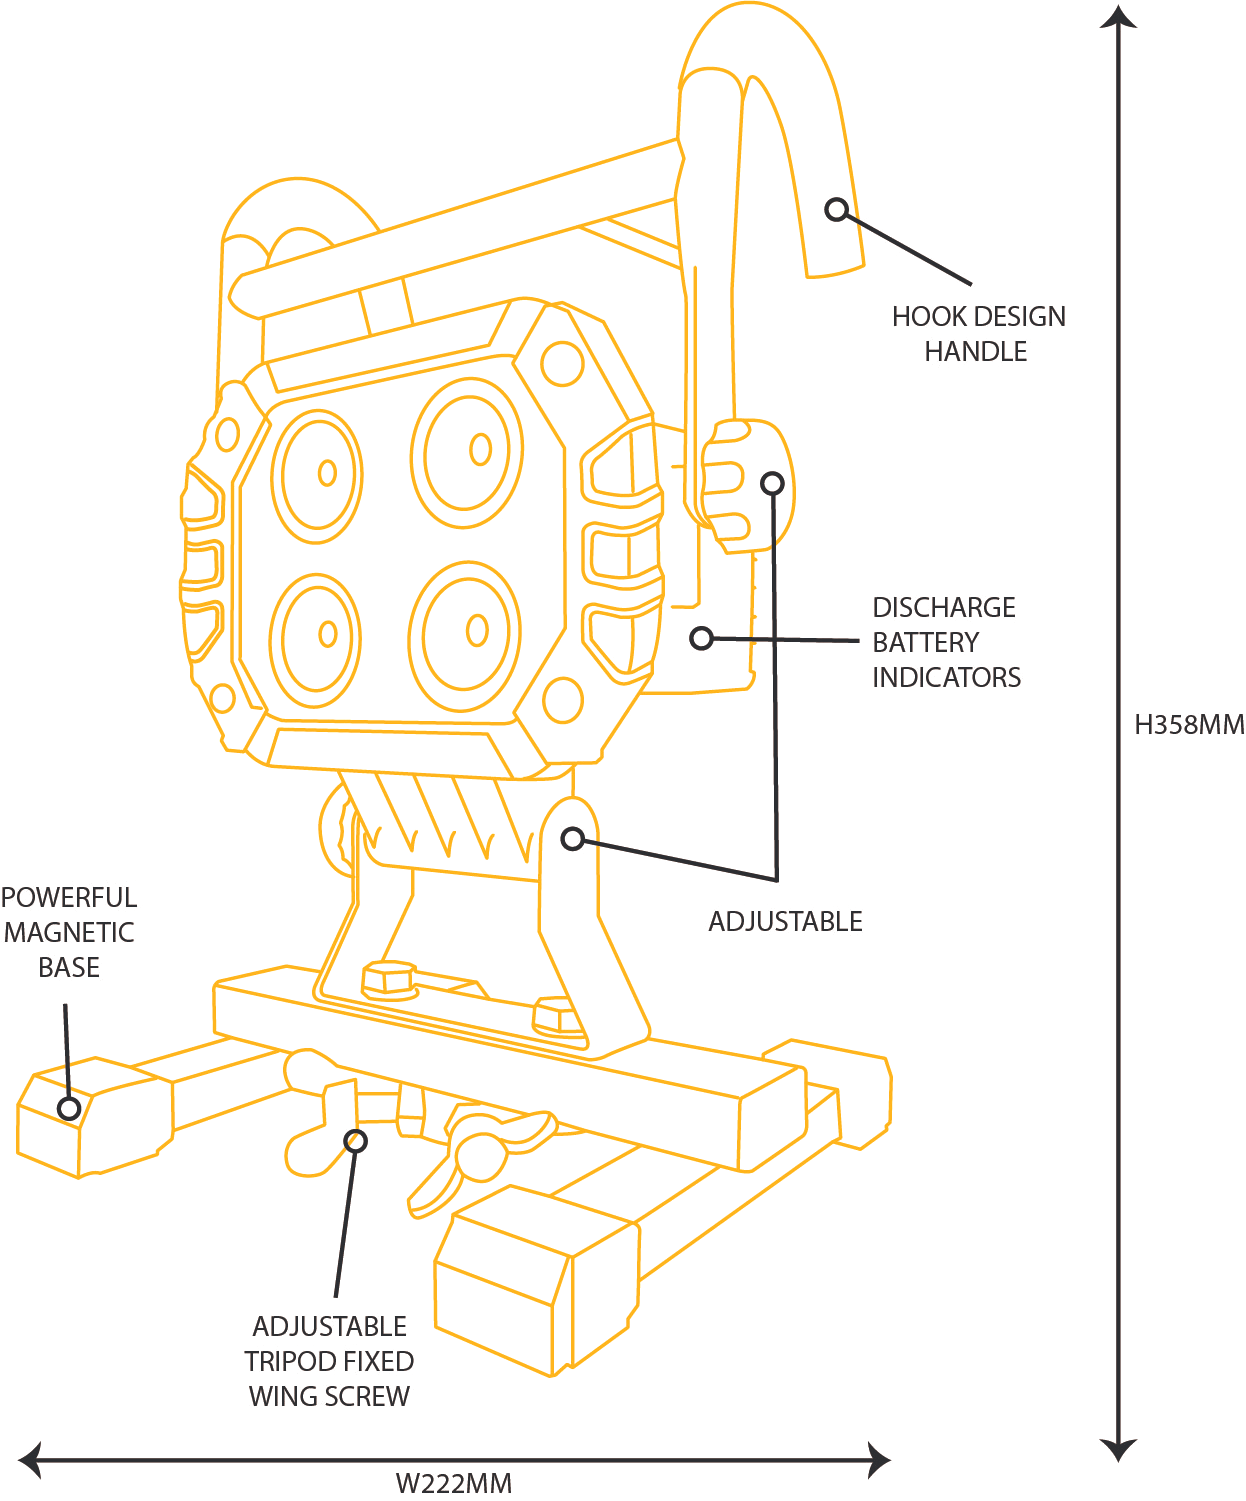 40W LED Rechargeable Floodlight (1x 22.2V Battery) [diagram]